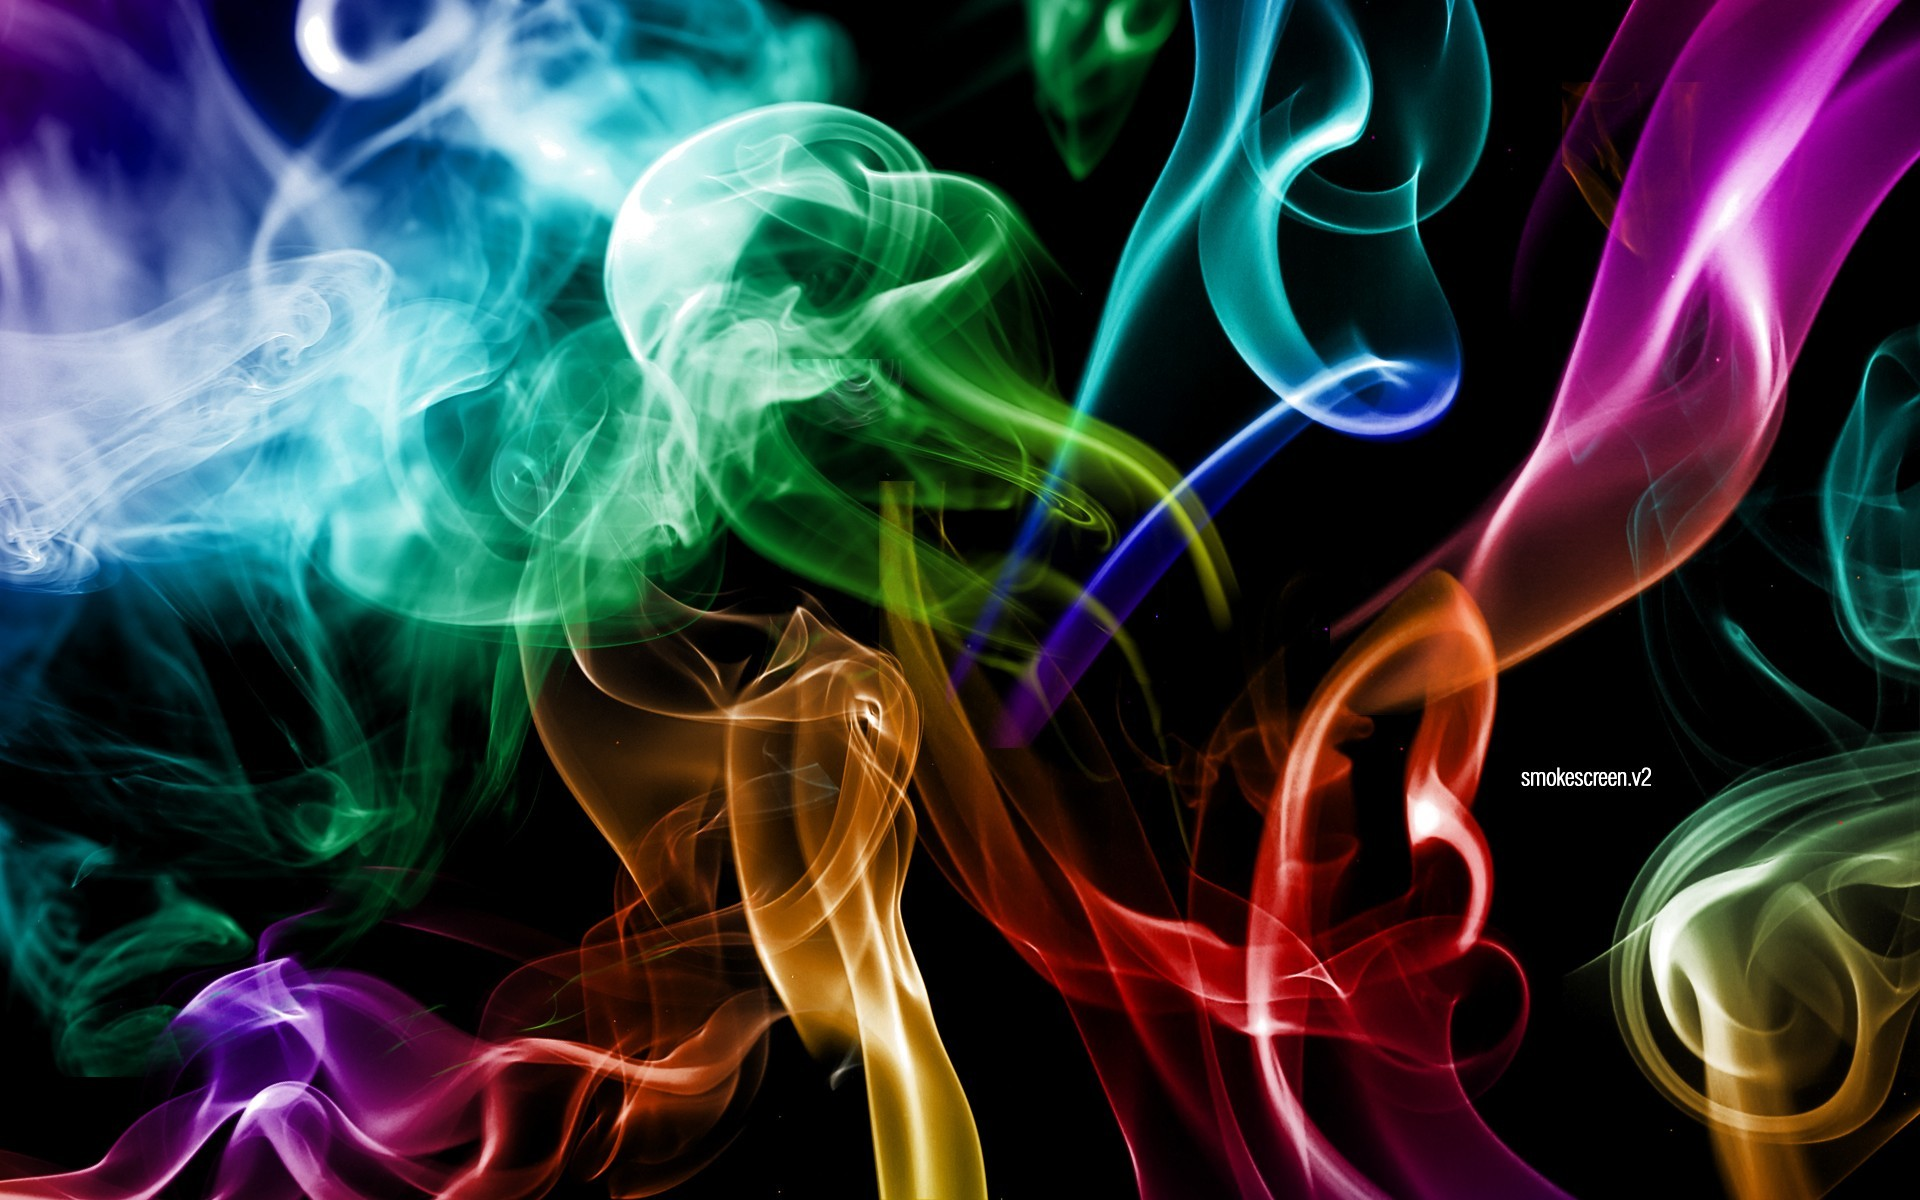 1920x1200 Smoke Colors Wallpapers | HD Wallpapers